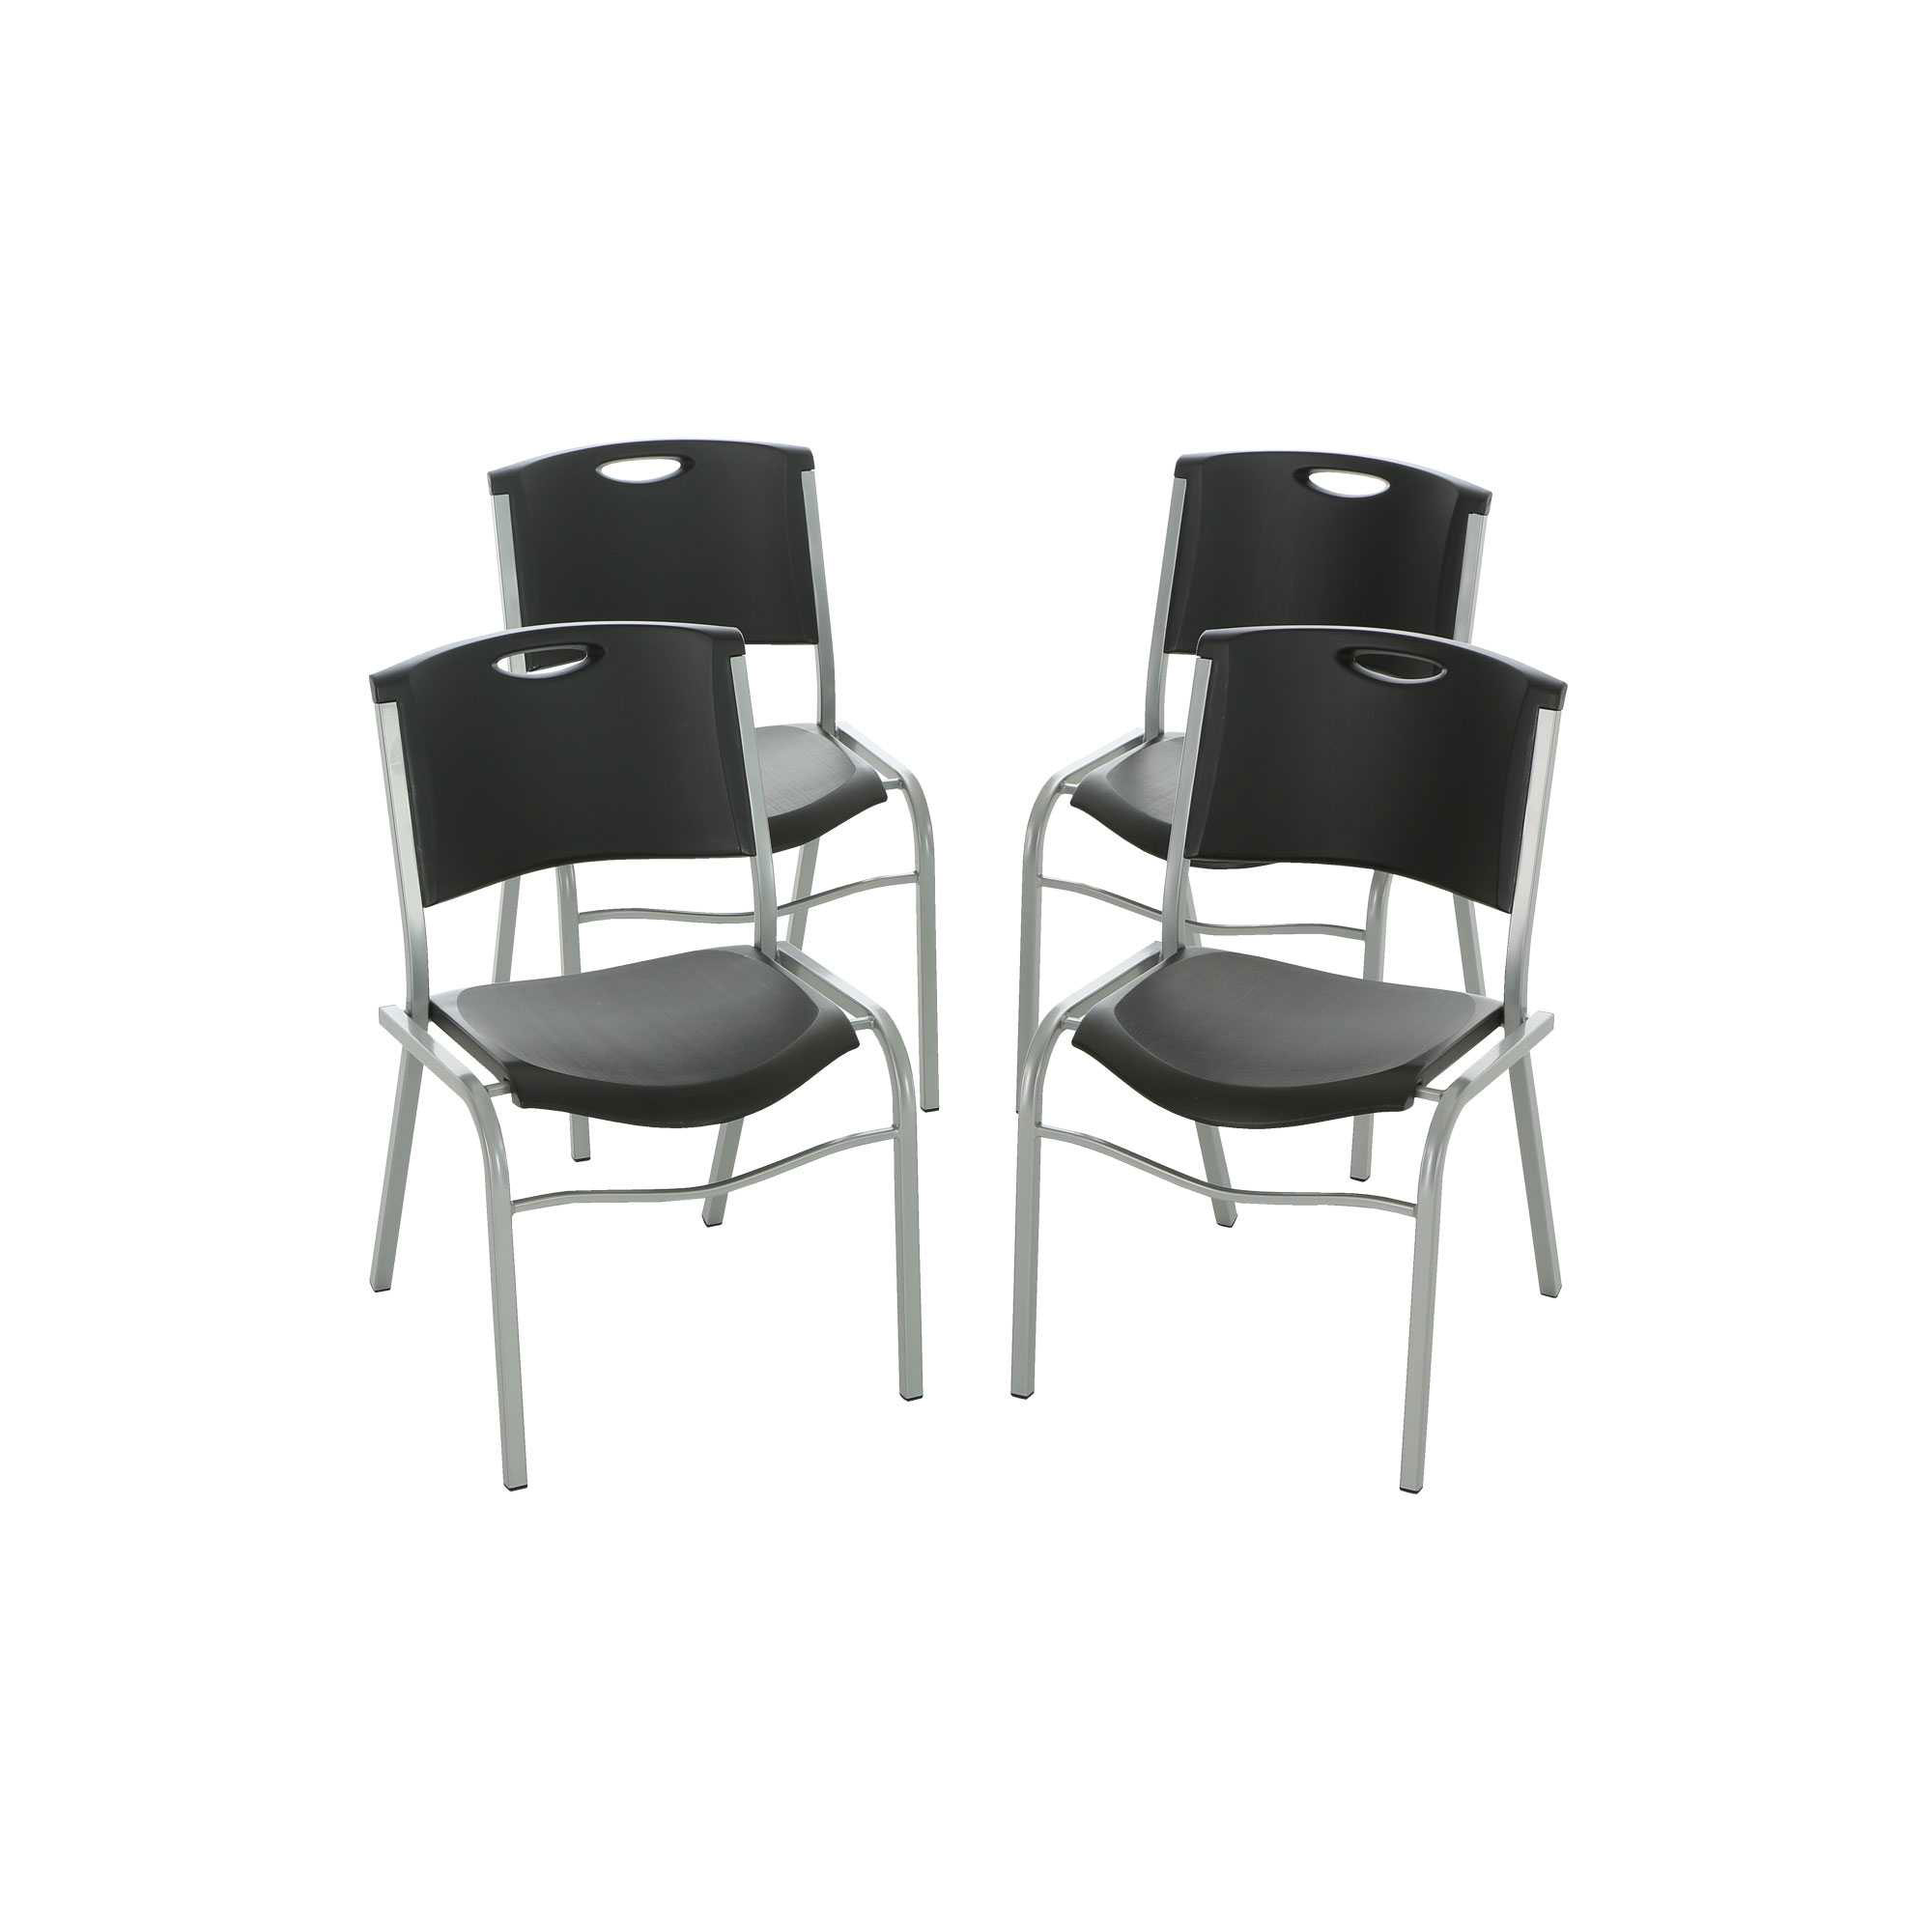 Chair Price Lifetime Stacking Chairs 42830 Black Stackable Chairs 4 Pack